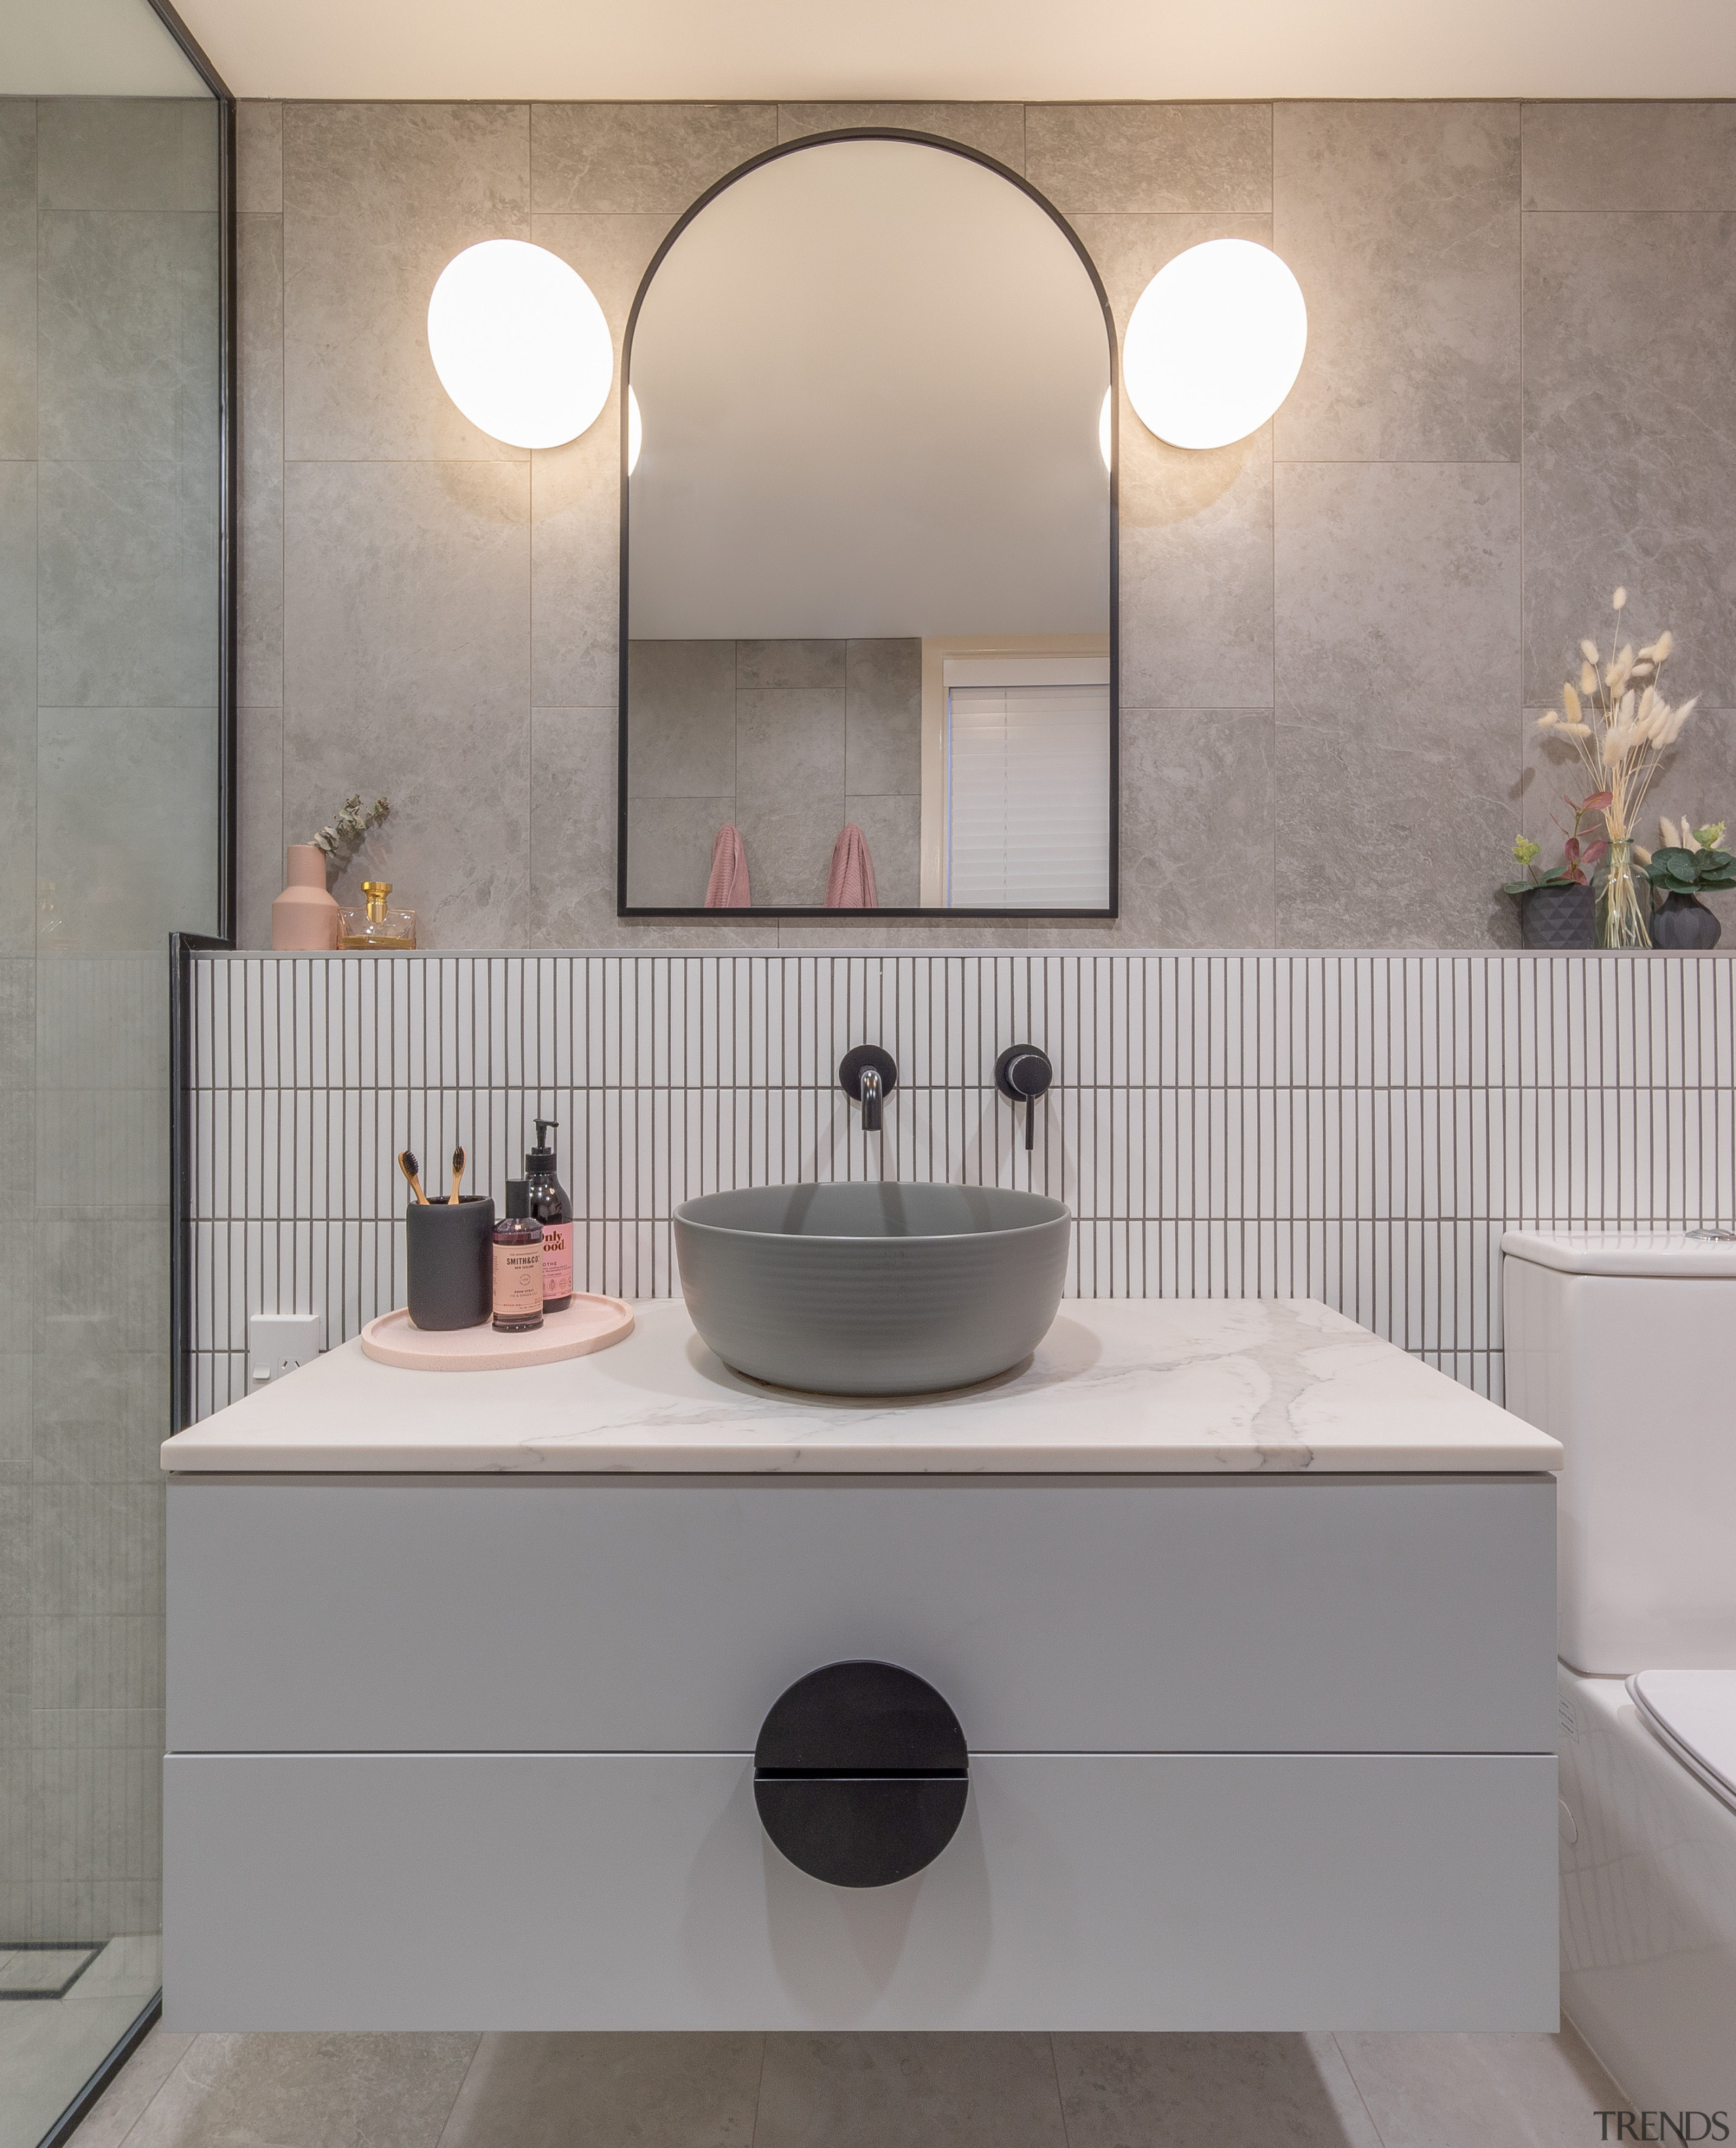 The stone vanity top and soft grey basin